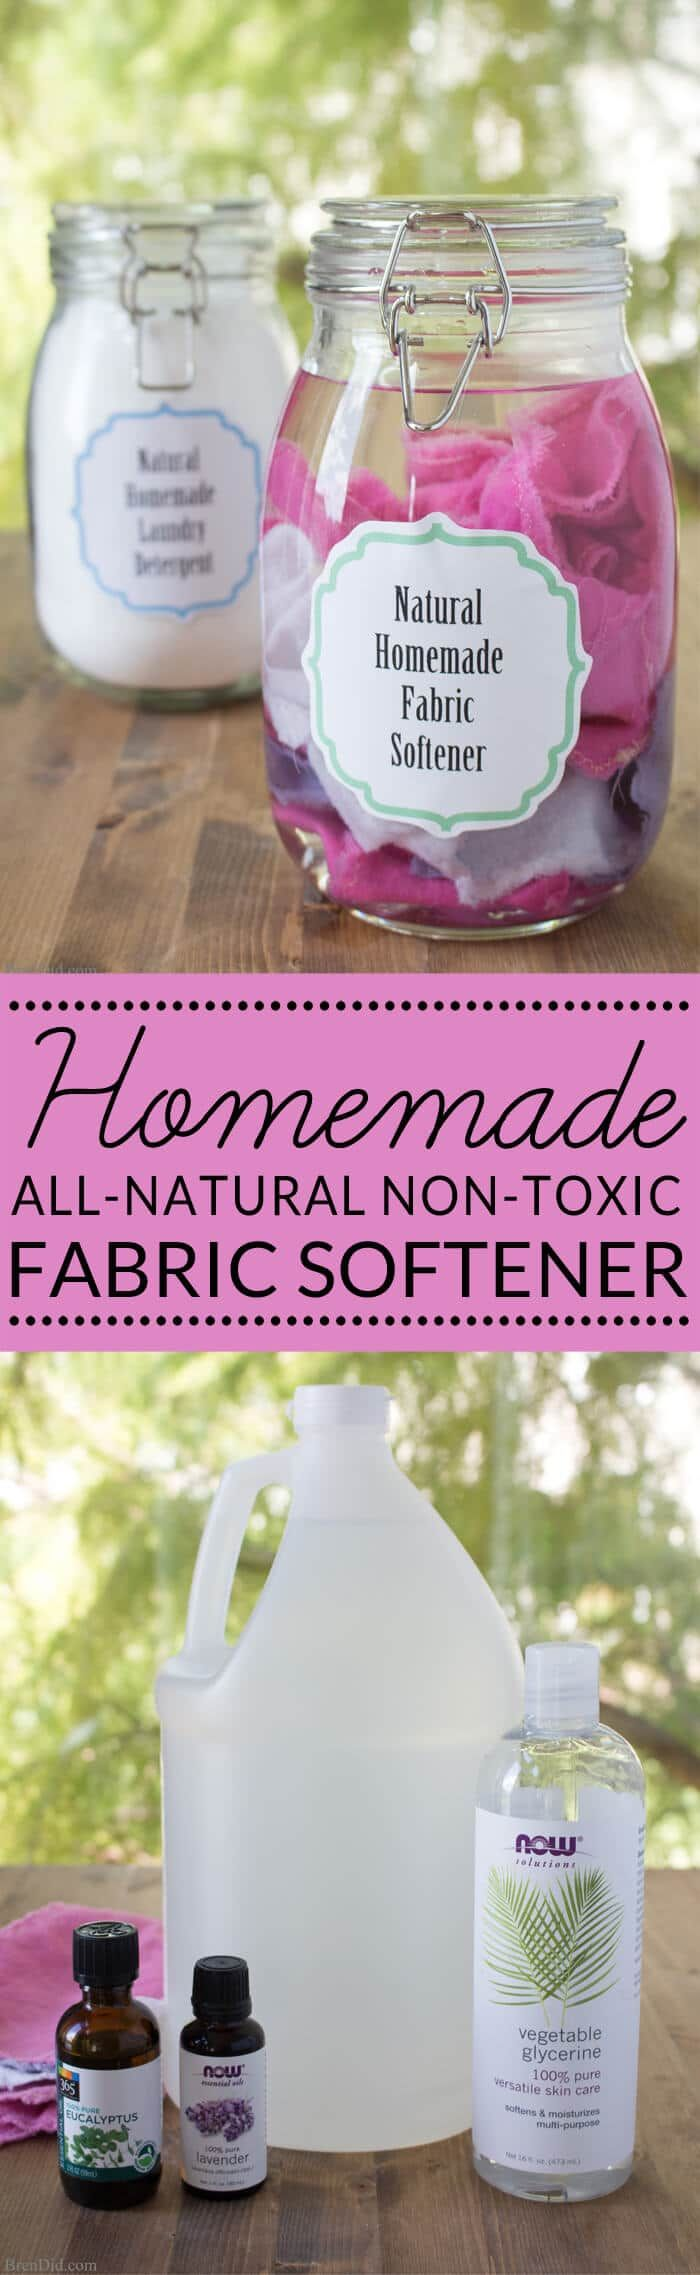 homemade fabric softener   all natural fabric softener   green cleaning and laundry   non-toxic fabric softener - Learn how to make homemade fabric softener dryer sheets.  via @brendidblog